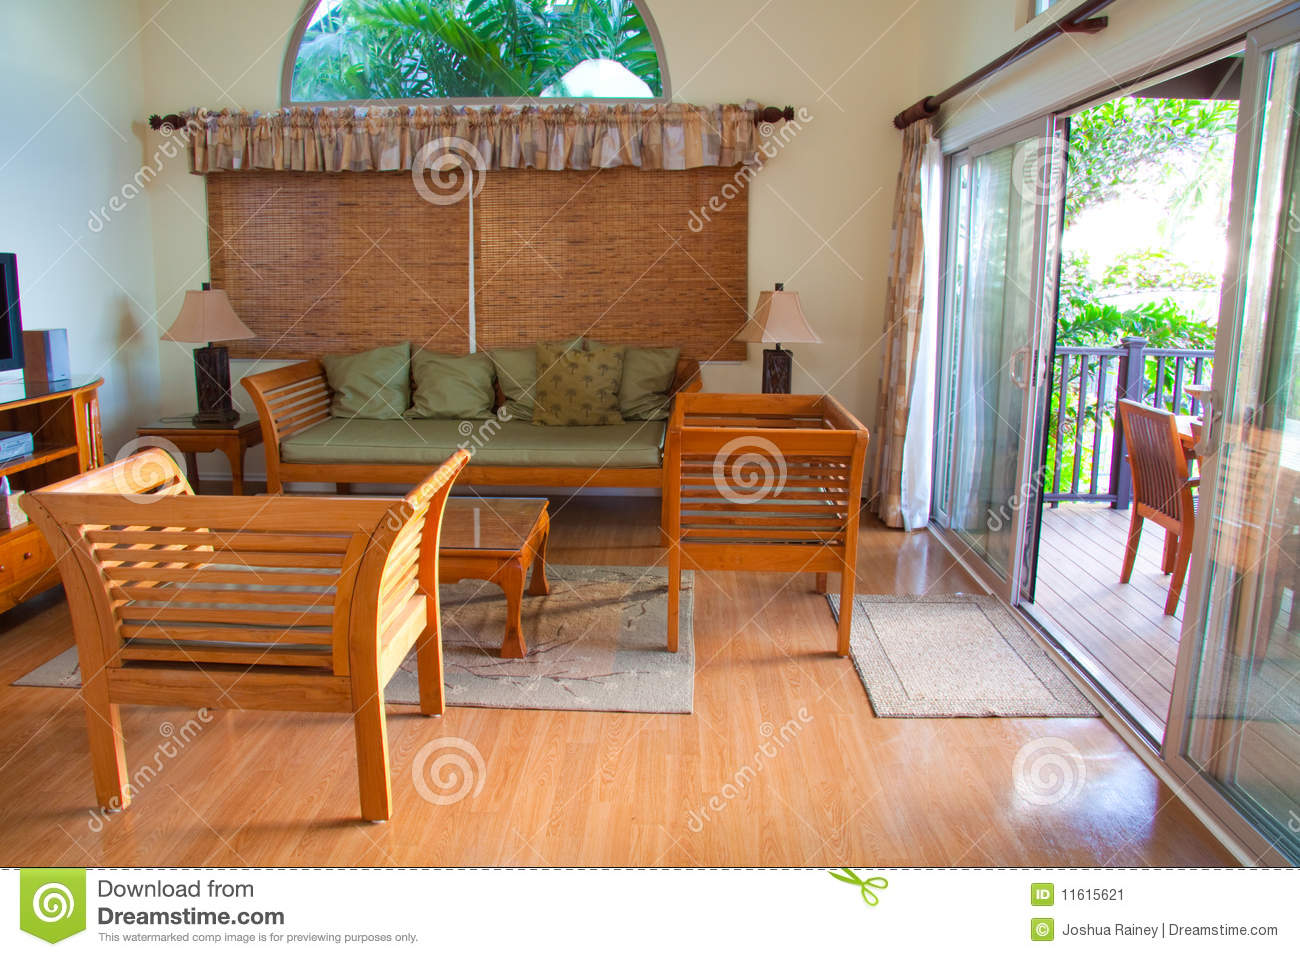 Hawaiian House Decor Stock Image. Image Of Rental, Travel